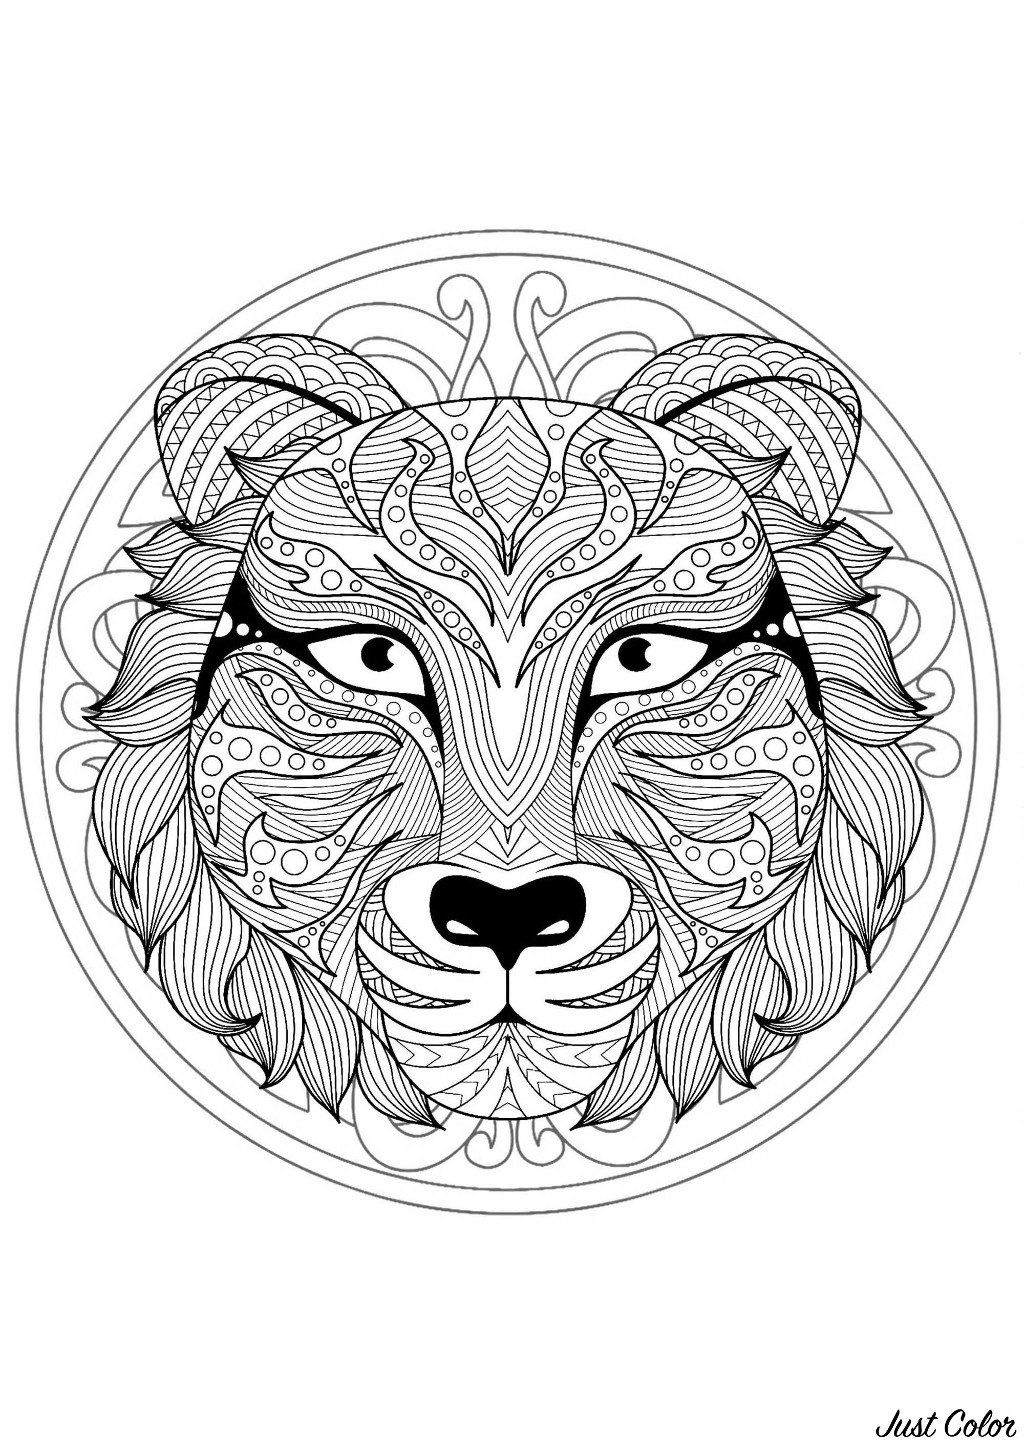 Tiger head in a difficult Mandala. Many small details and little areas for a Mandala very original and harmonious. Do whatever it takes to get rid of any distractions that may interfere with your coloring.